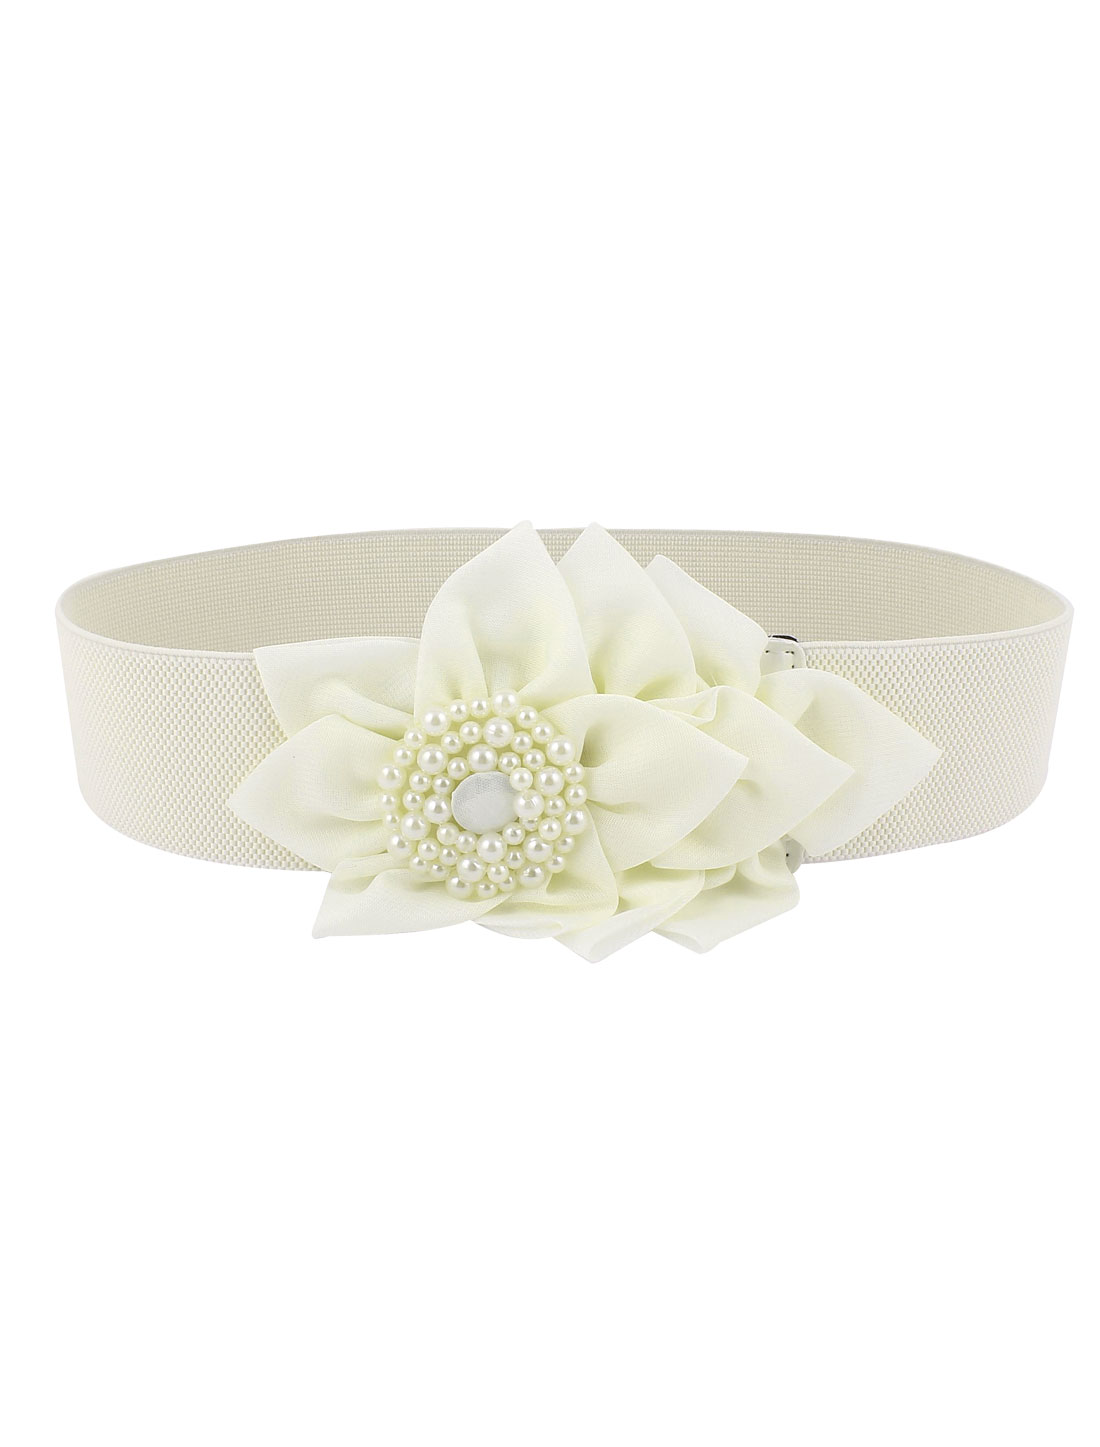 Metal Buckle Link Faux Pearls Rhinestone Inlaid Nylon Flower Decor Stretchy Waist Belt for Lady White